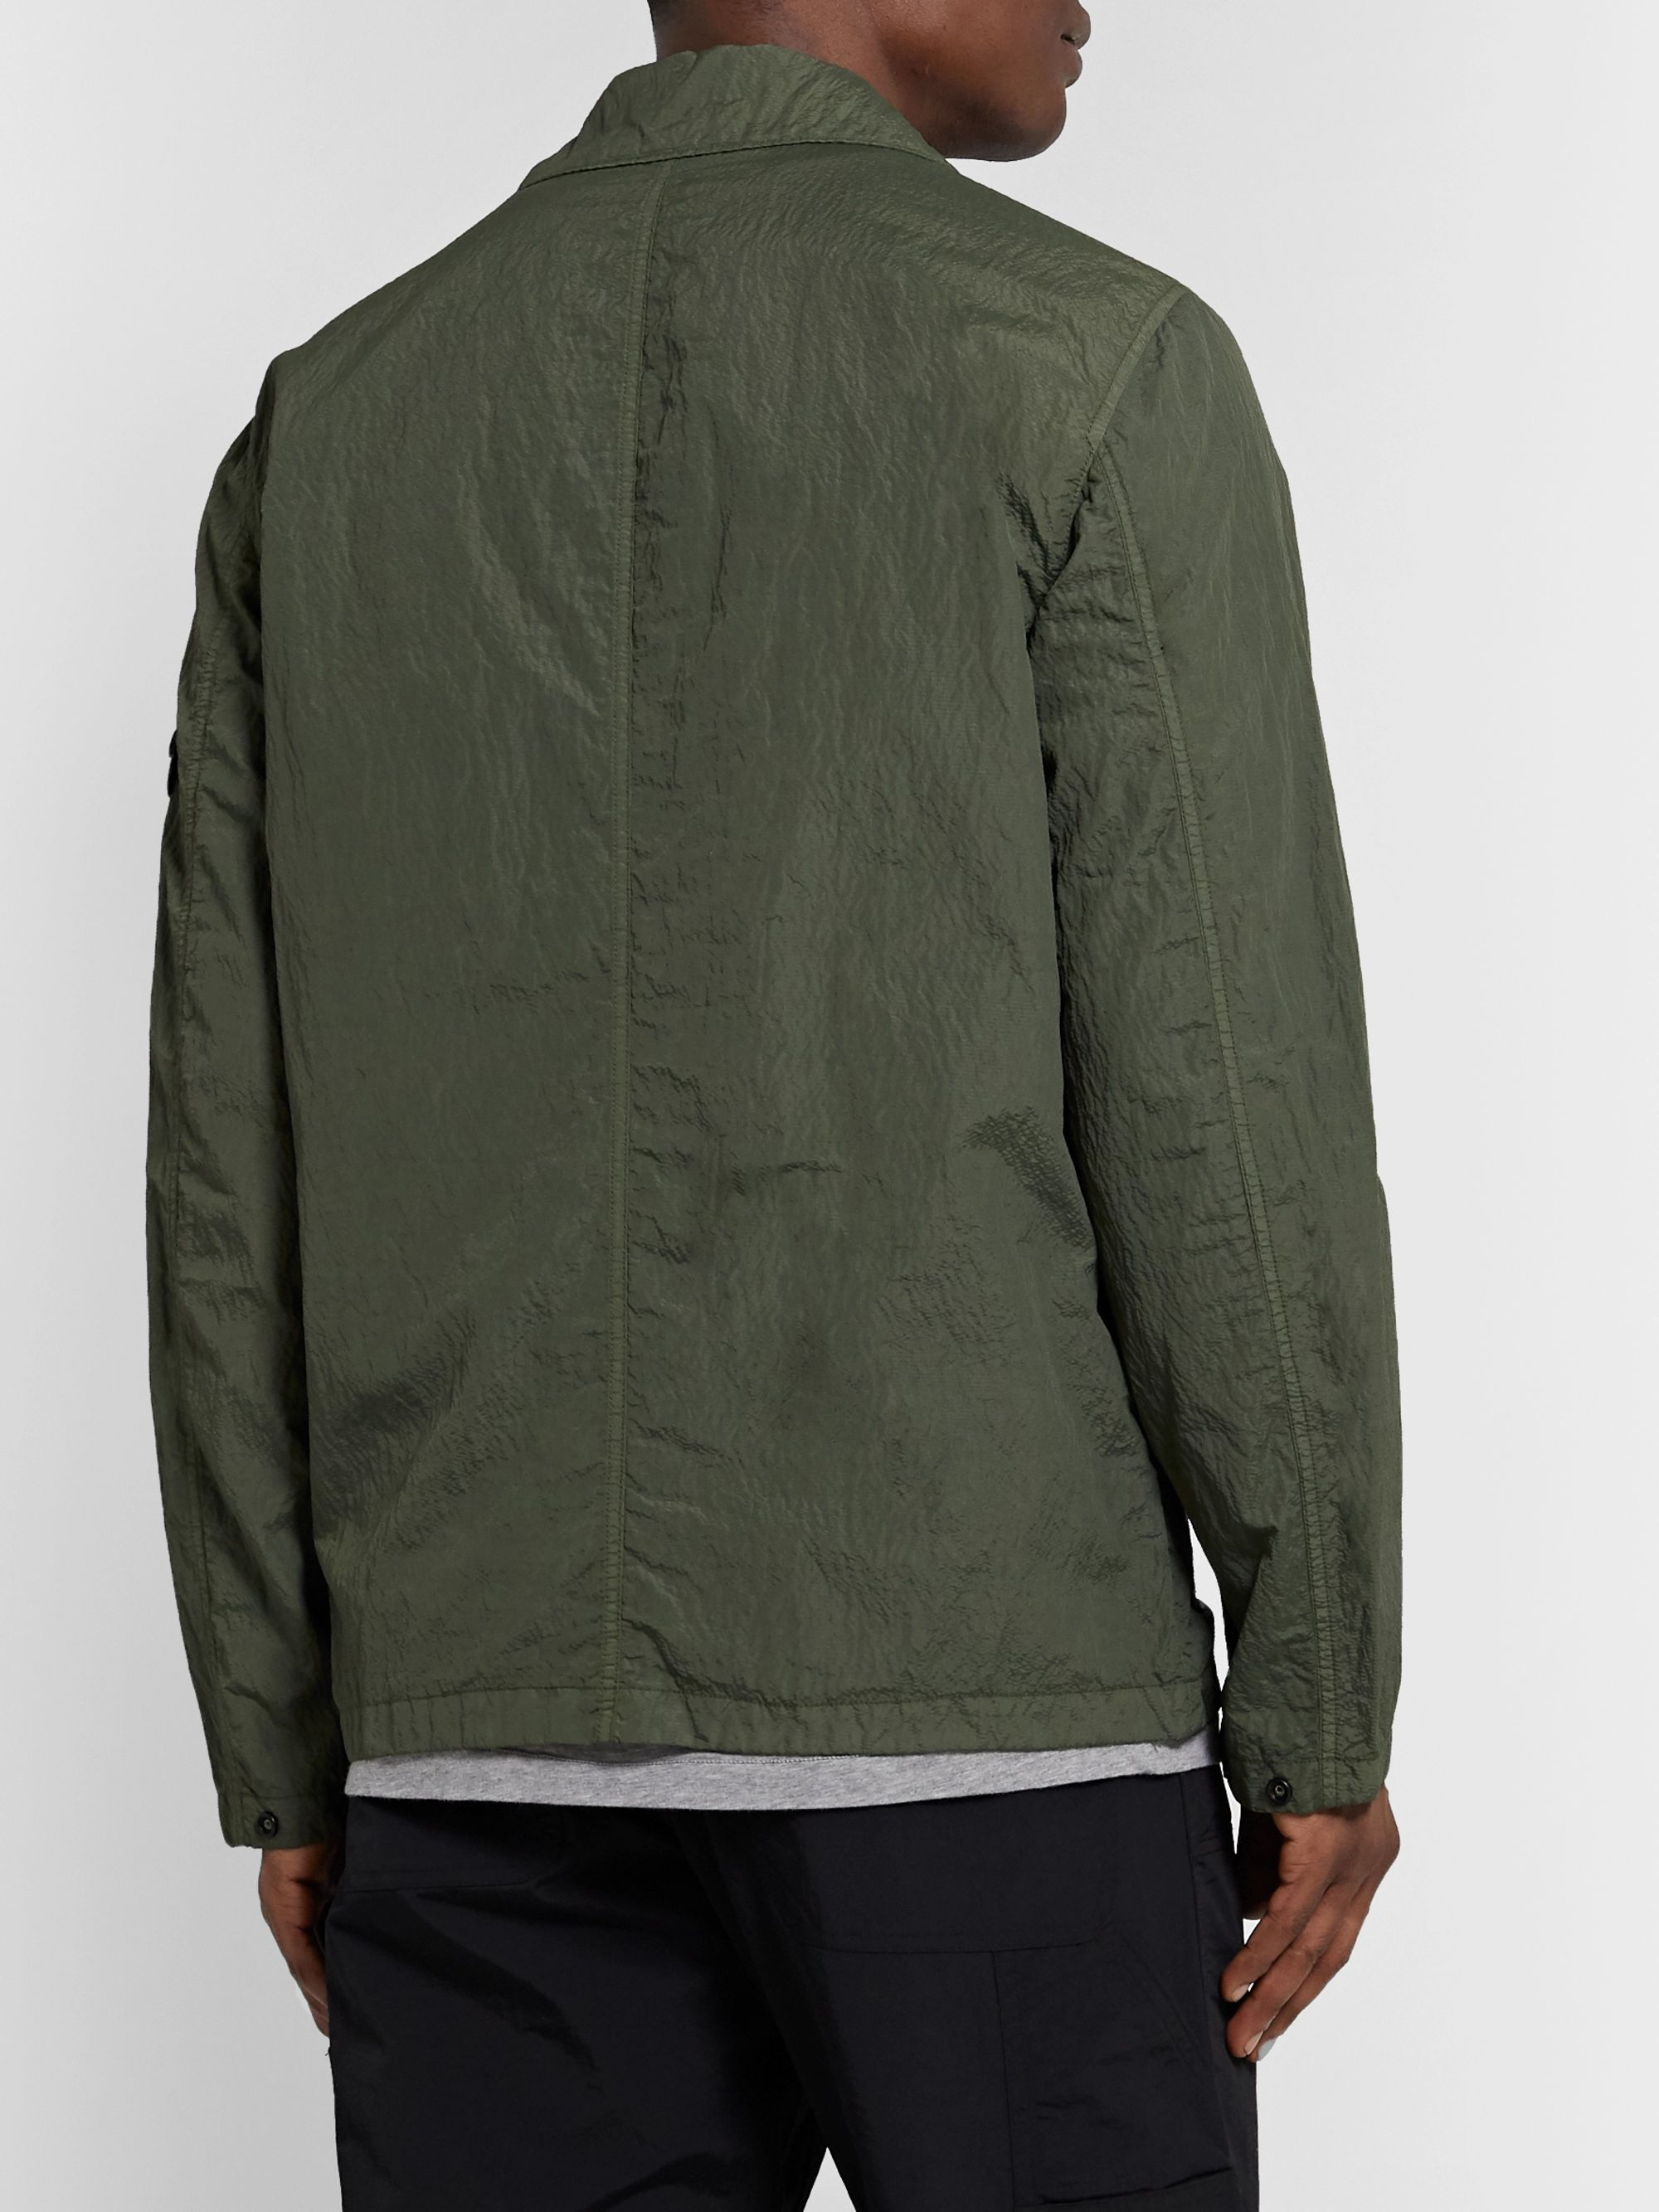 Stone Island Garment-Dyed Webbing-Trimmed Nylon-Blend Seersucker Shirt Jacket